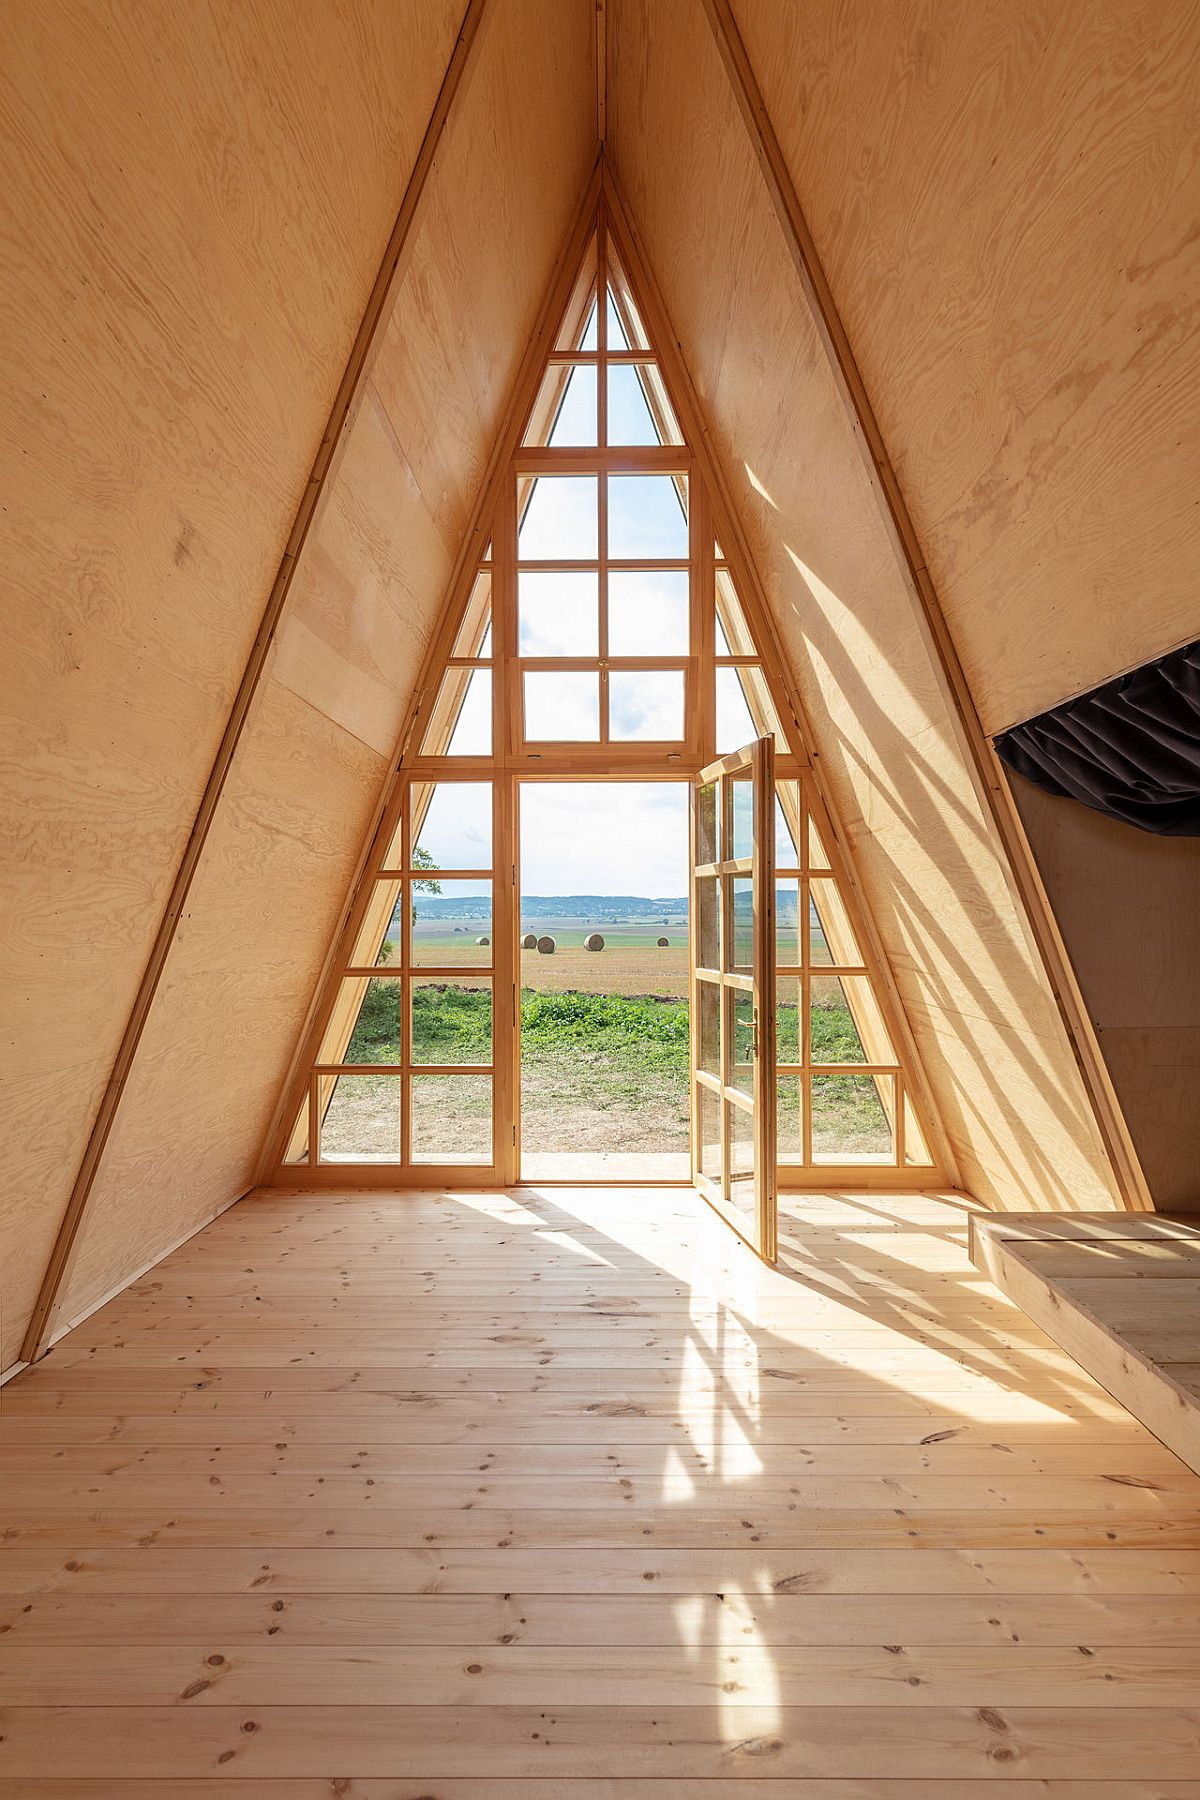 Glass-walls-bring-natural-light-into-th-woodsy-cabin-built-for-solitude-86154